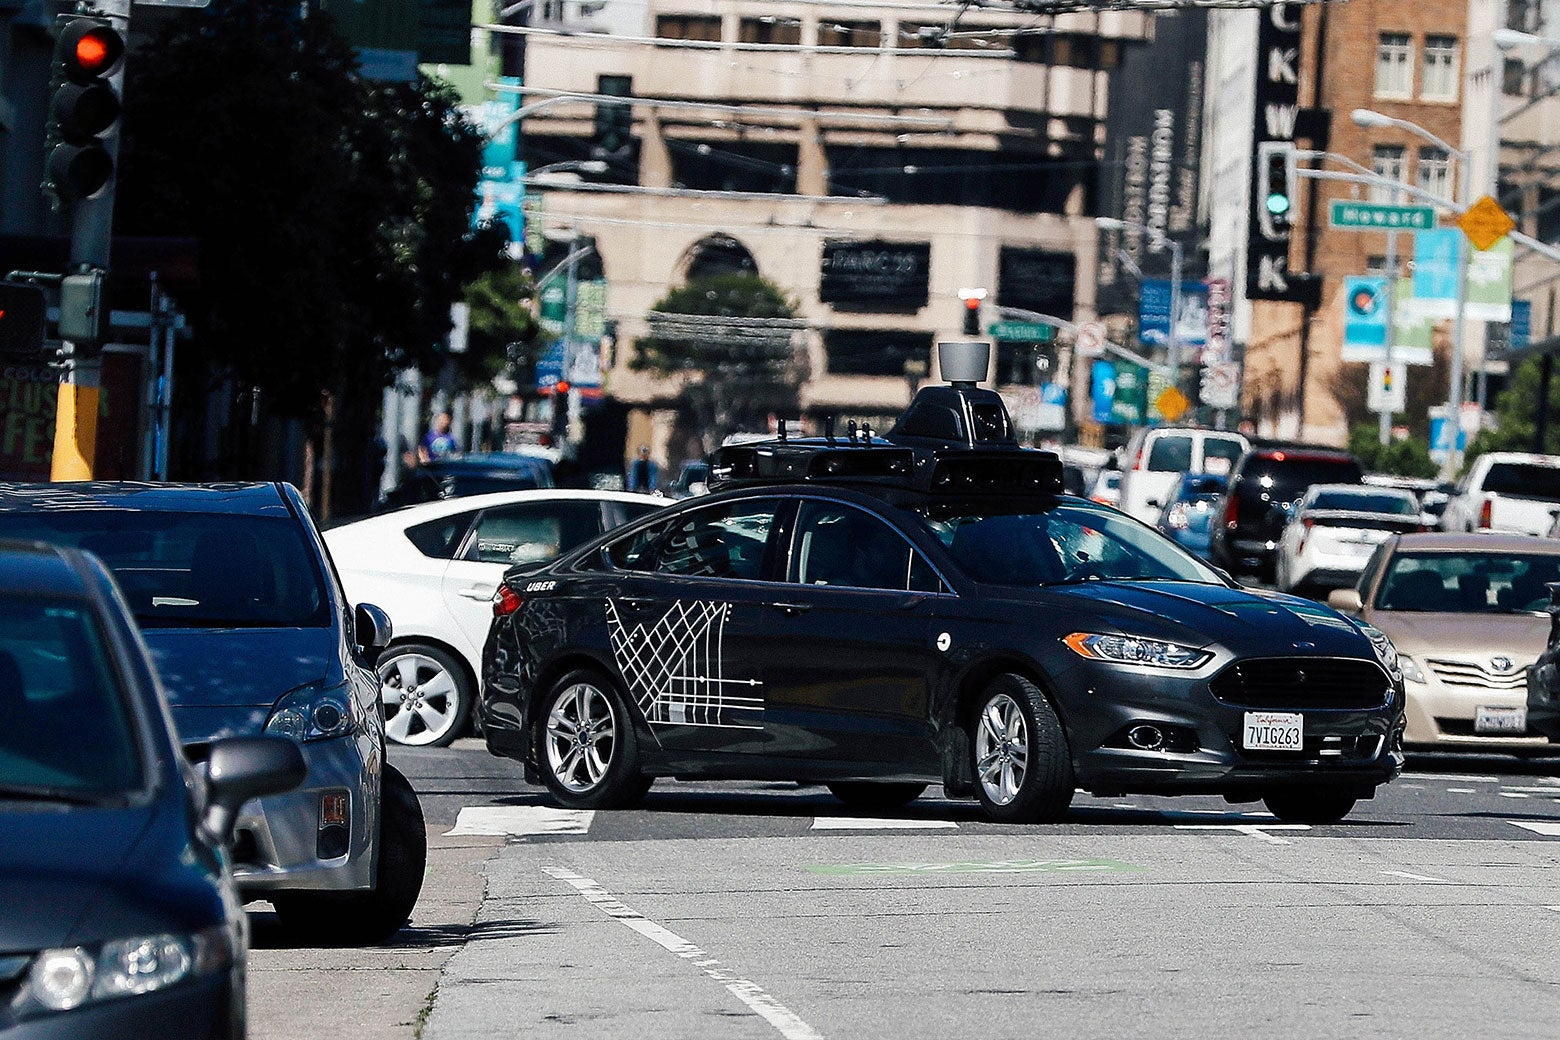 An Uber self-driving car drives down Fifth Street in San Francisco.